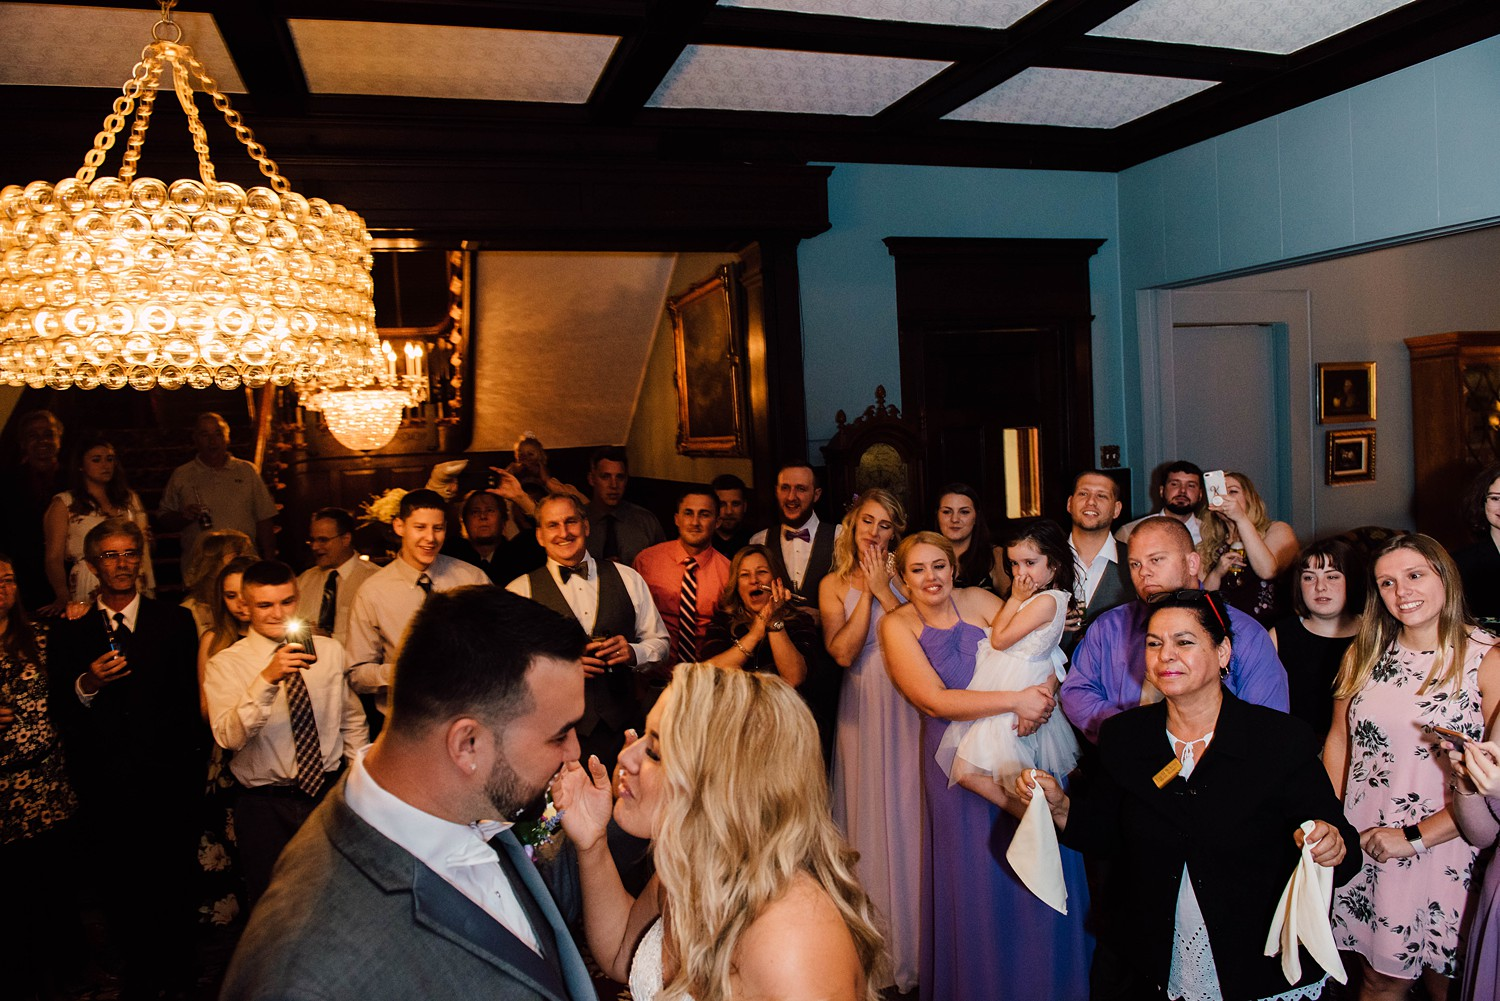 Jackson_Wedding_Reception_DSC_6592_0249.JPG